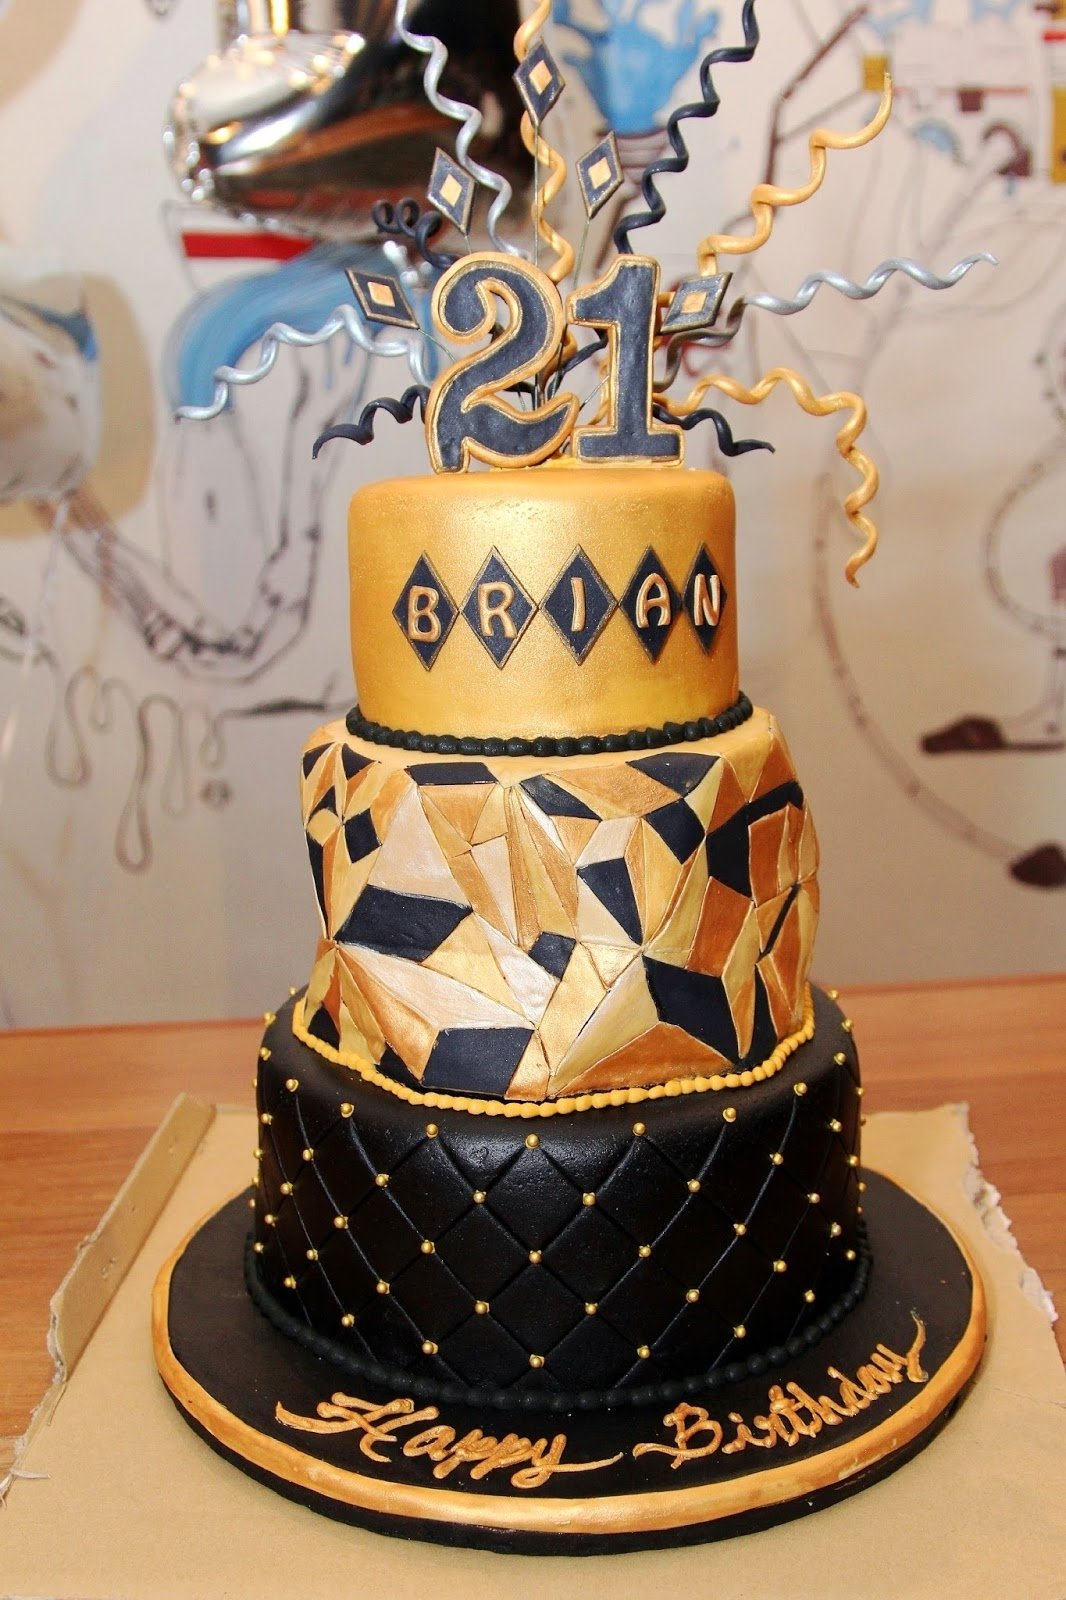 10 Famous 21St Birthday Party Ideas For Guys mr brian see mr brian sees 21st birthday party the curious goat 1 2020